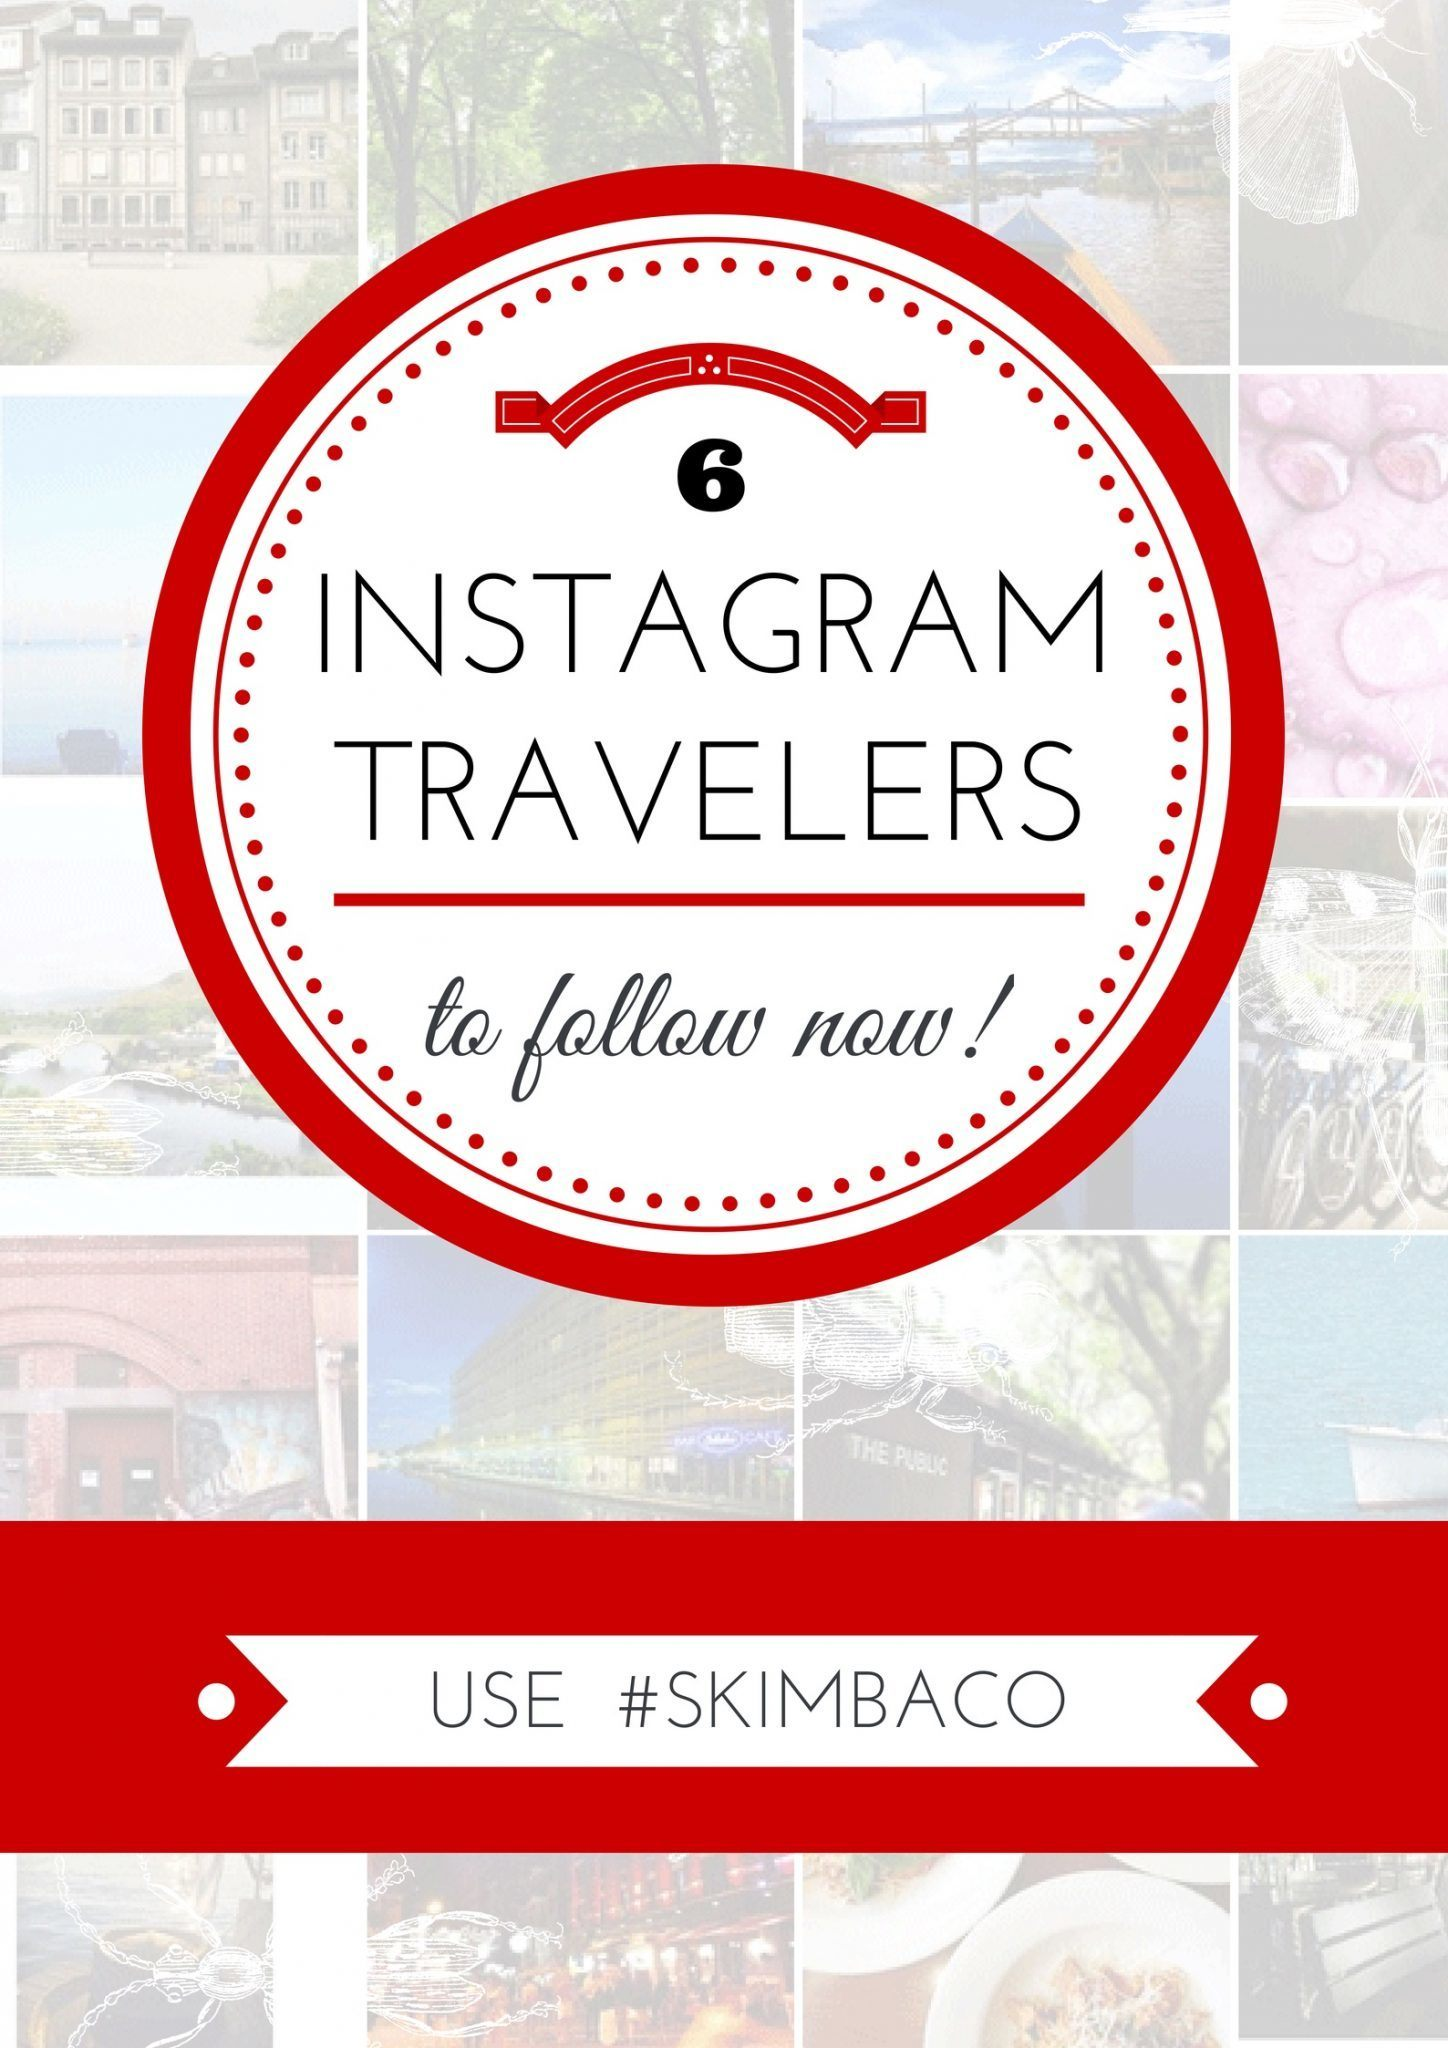 6 amazing travel accounts to follow on Instagram